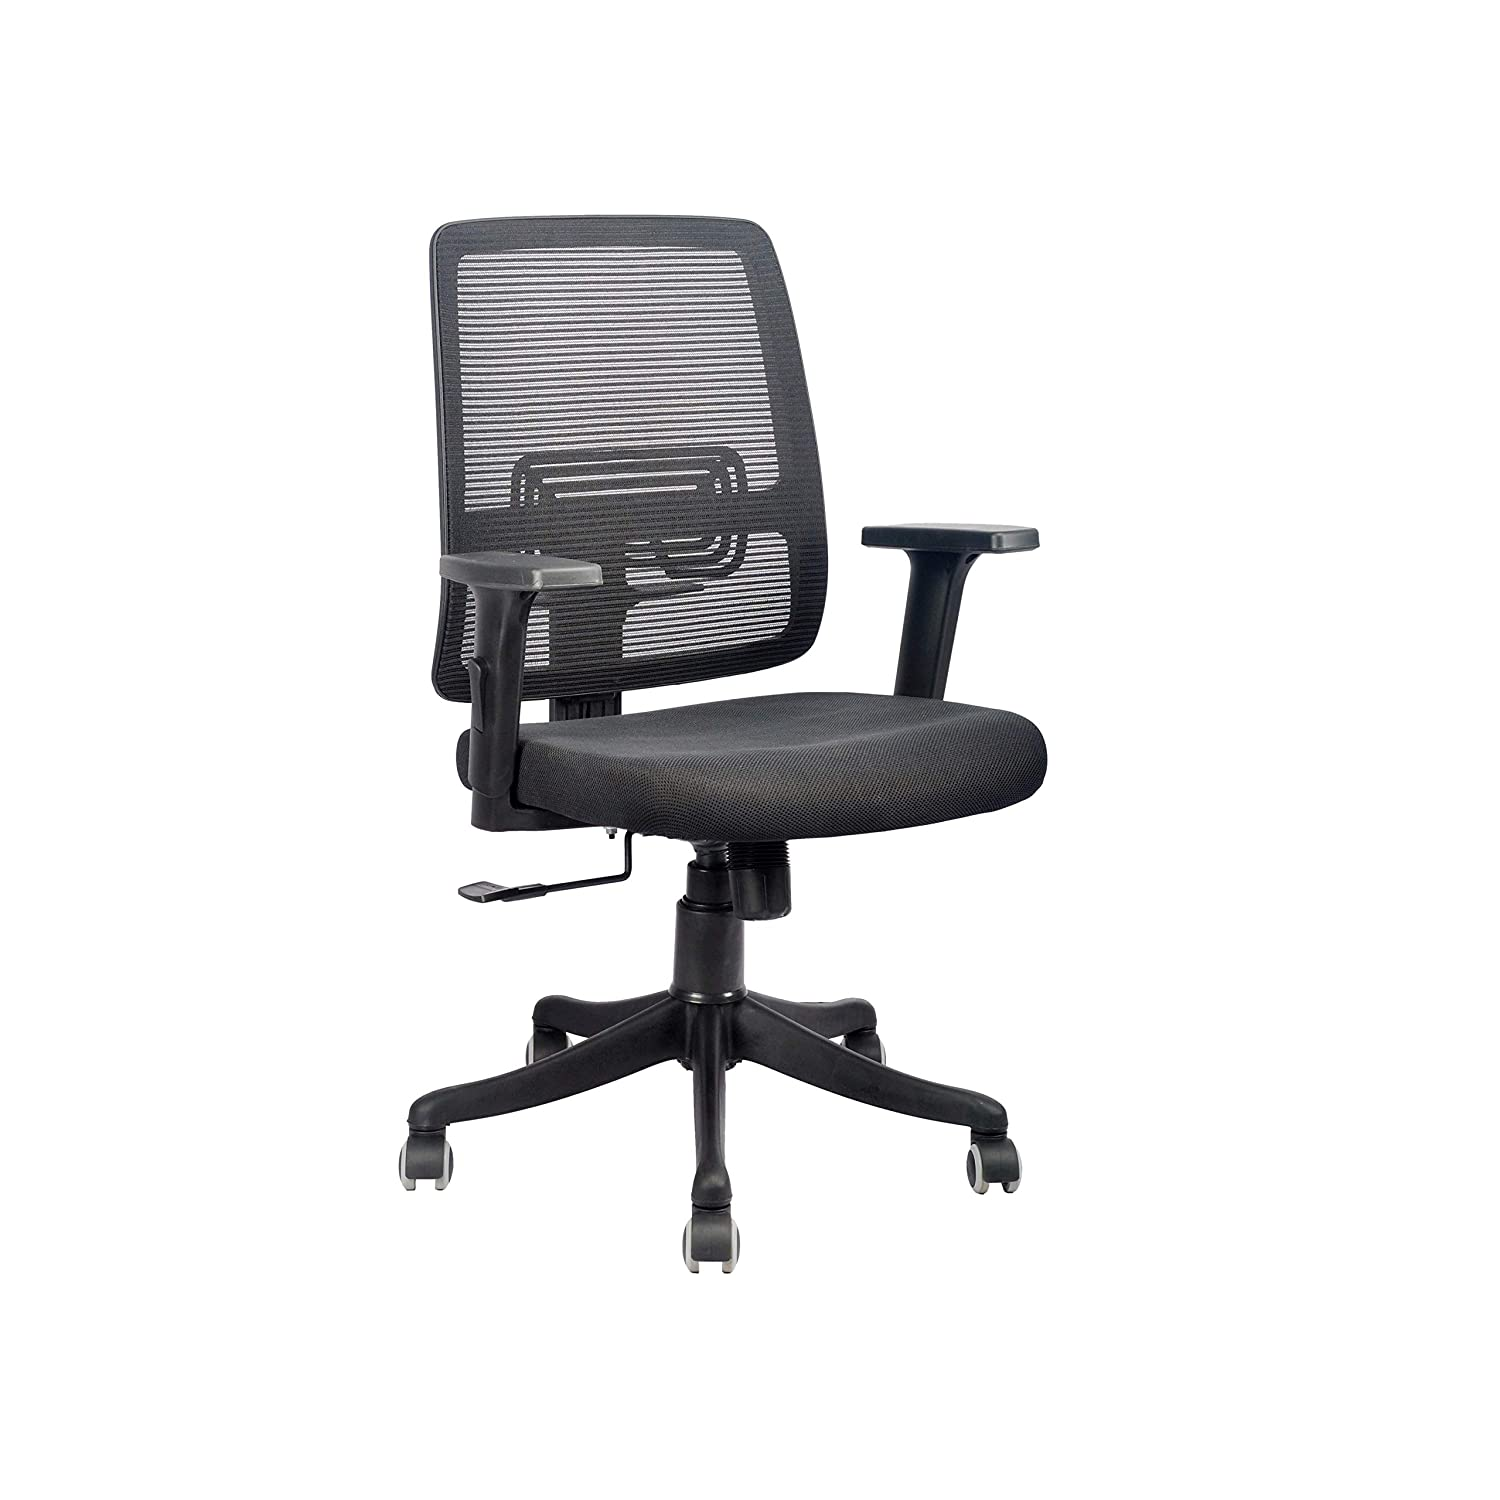 INNOWIN® Pony Mid Back Office Chair review